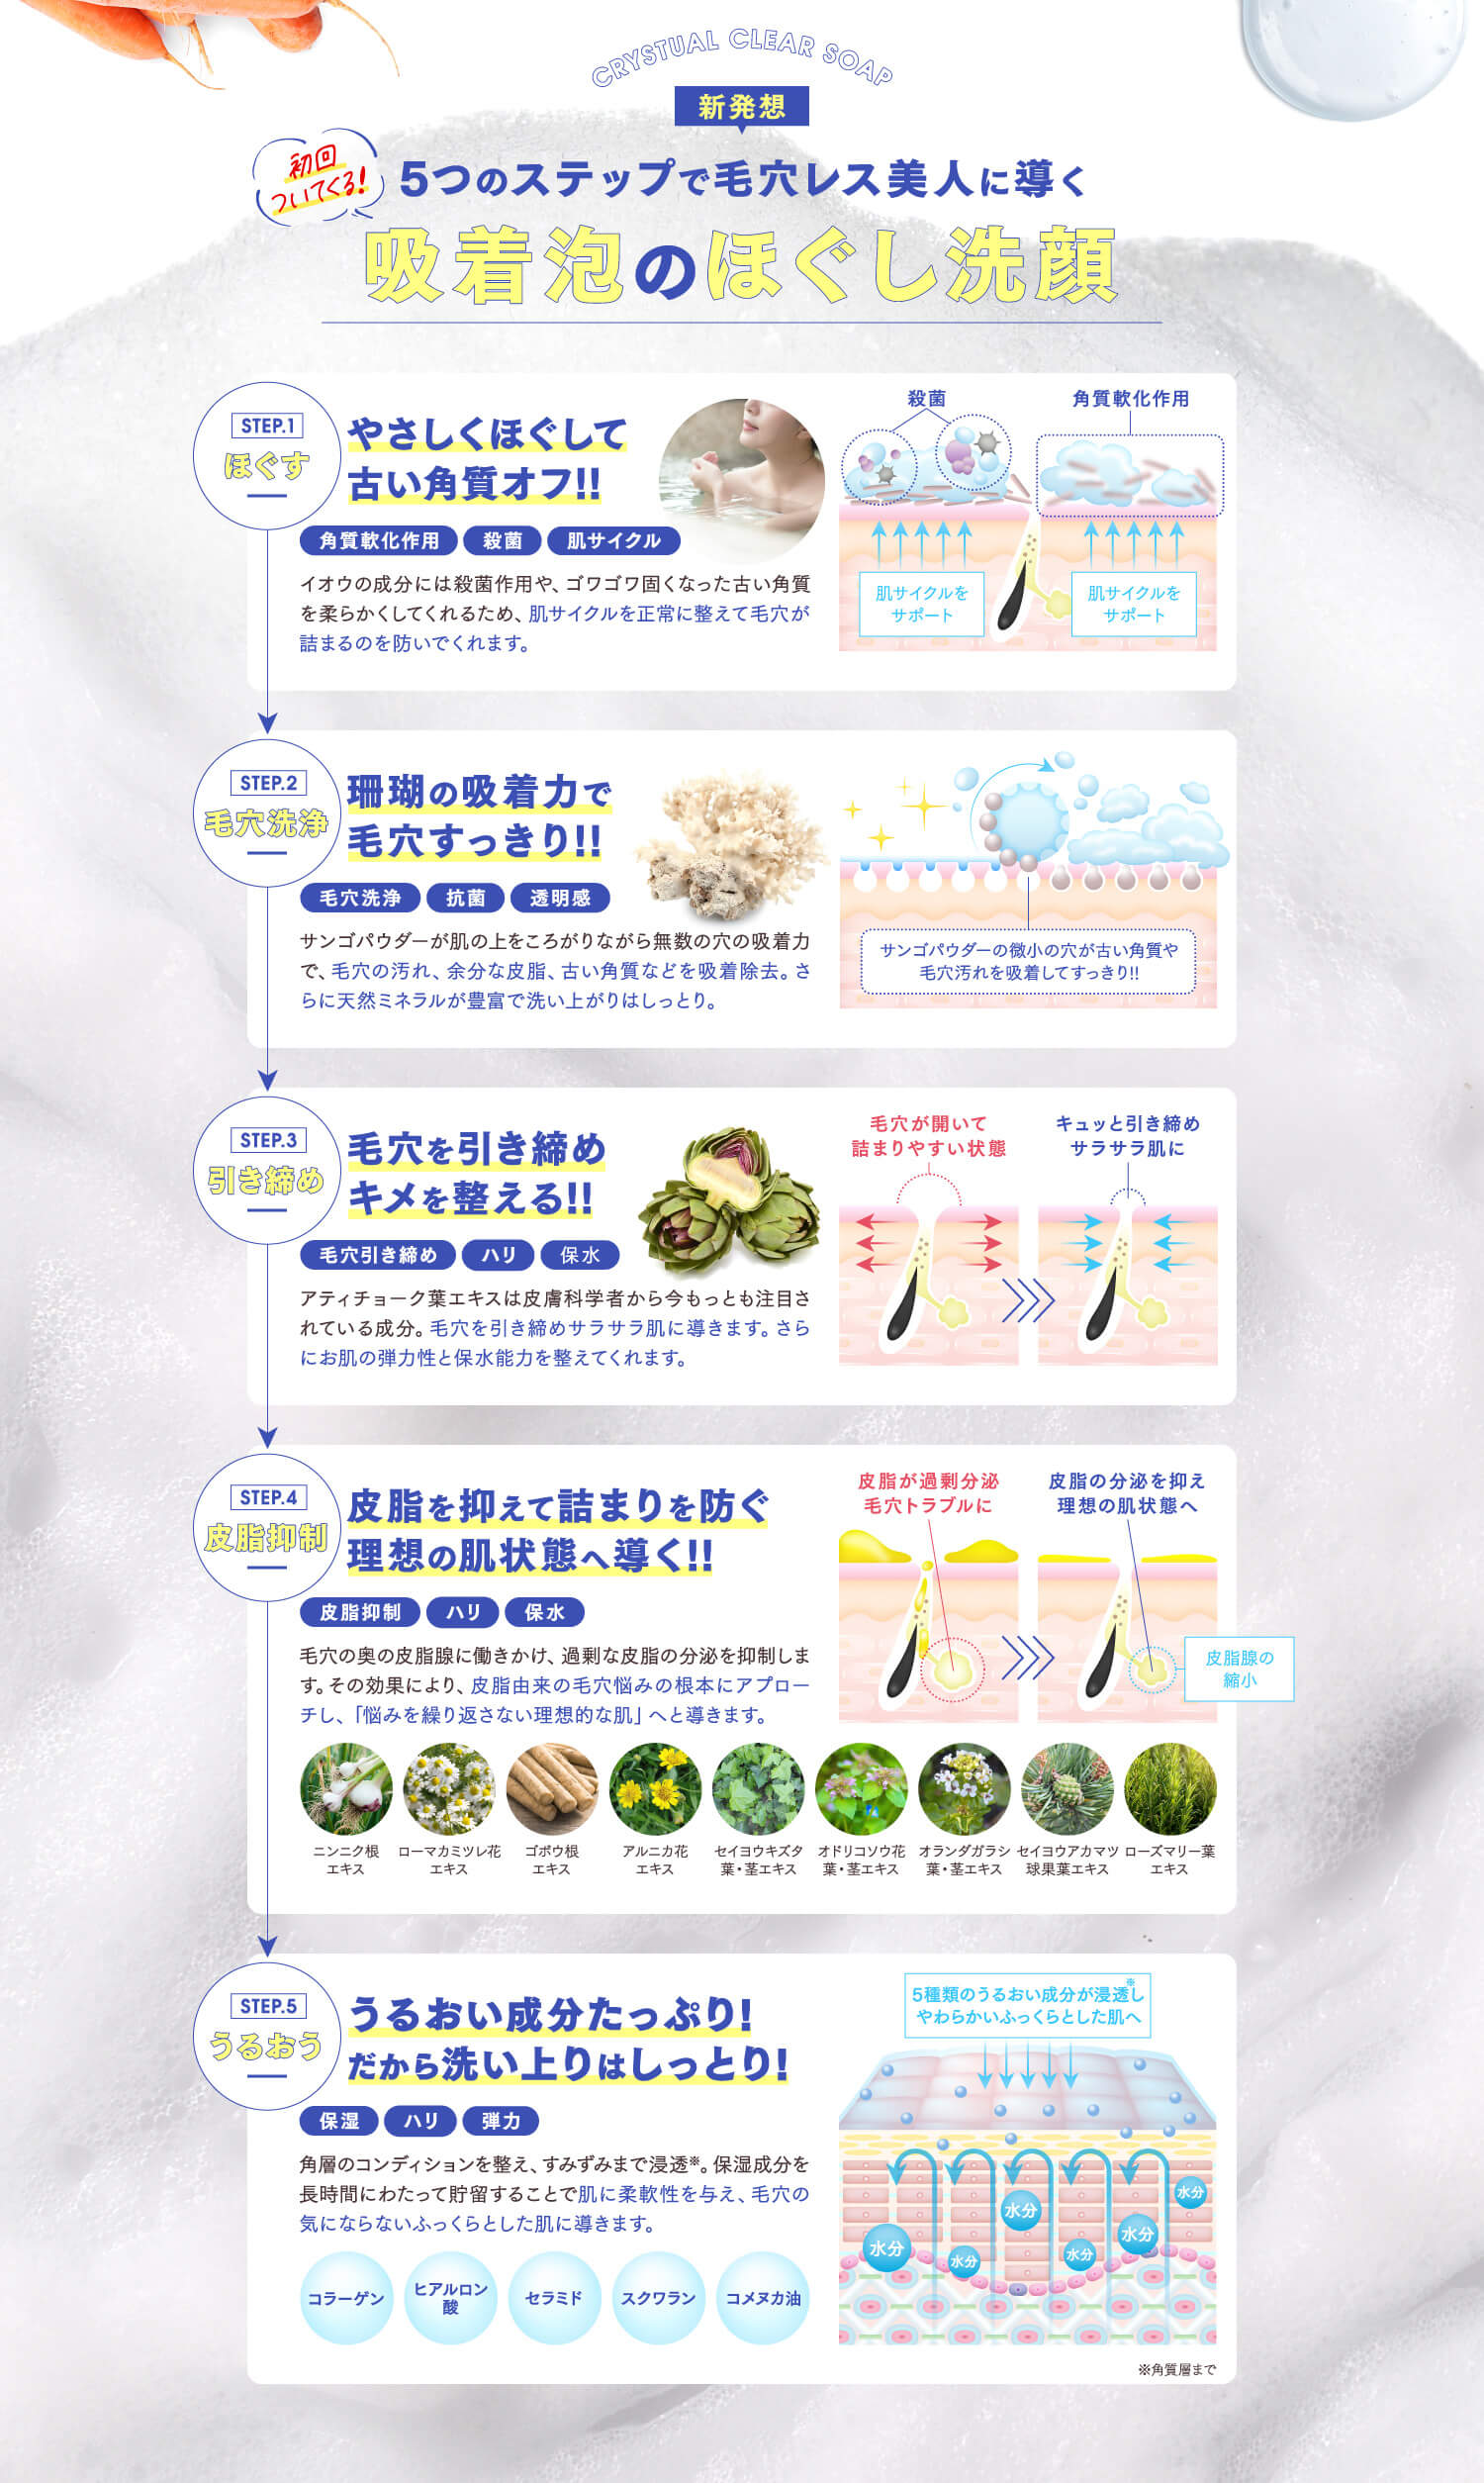 CRYSTUAL CLEAR SOAP・CRYSTUAL SUPPLEMENT 新発想 5つのステップで毛穴レス美人に導く吸着泡のほぐし洗顔